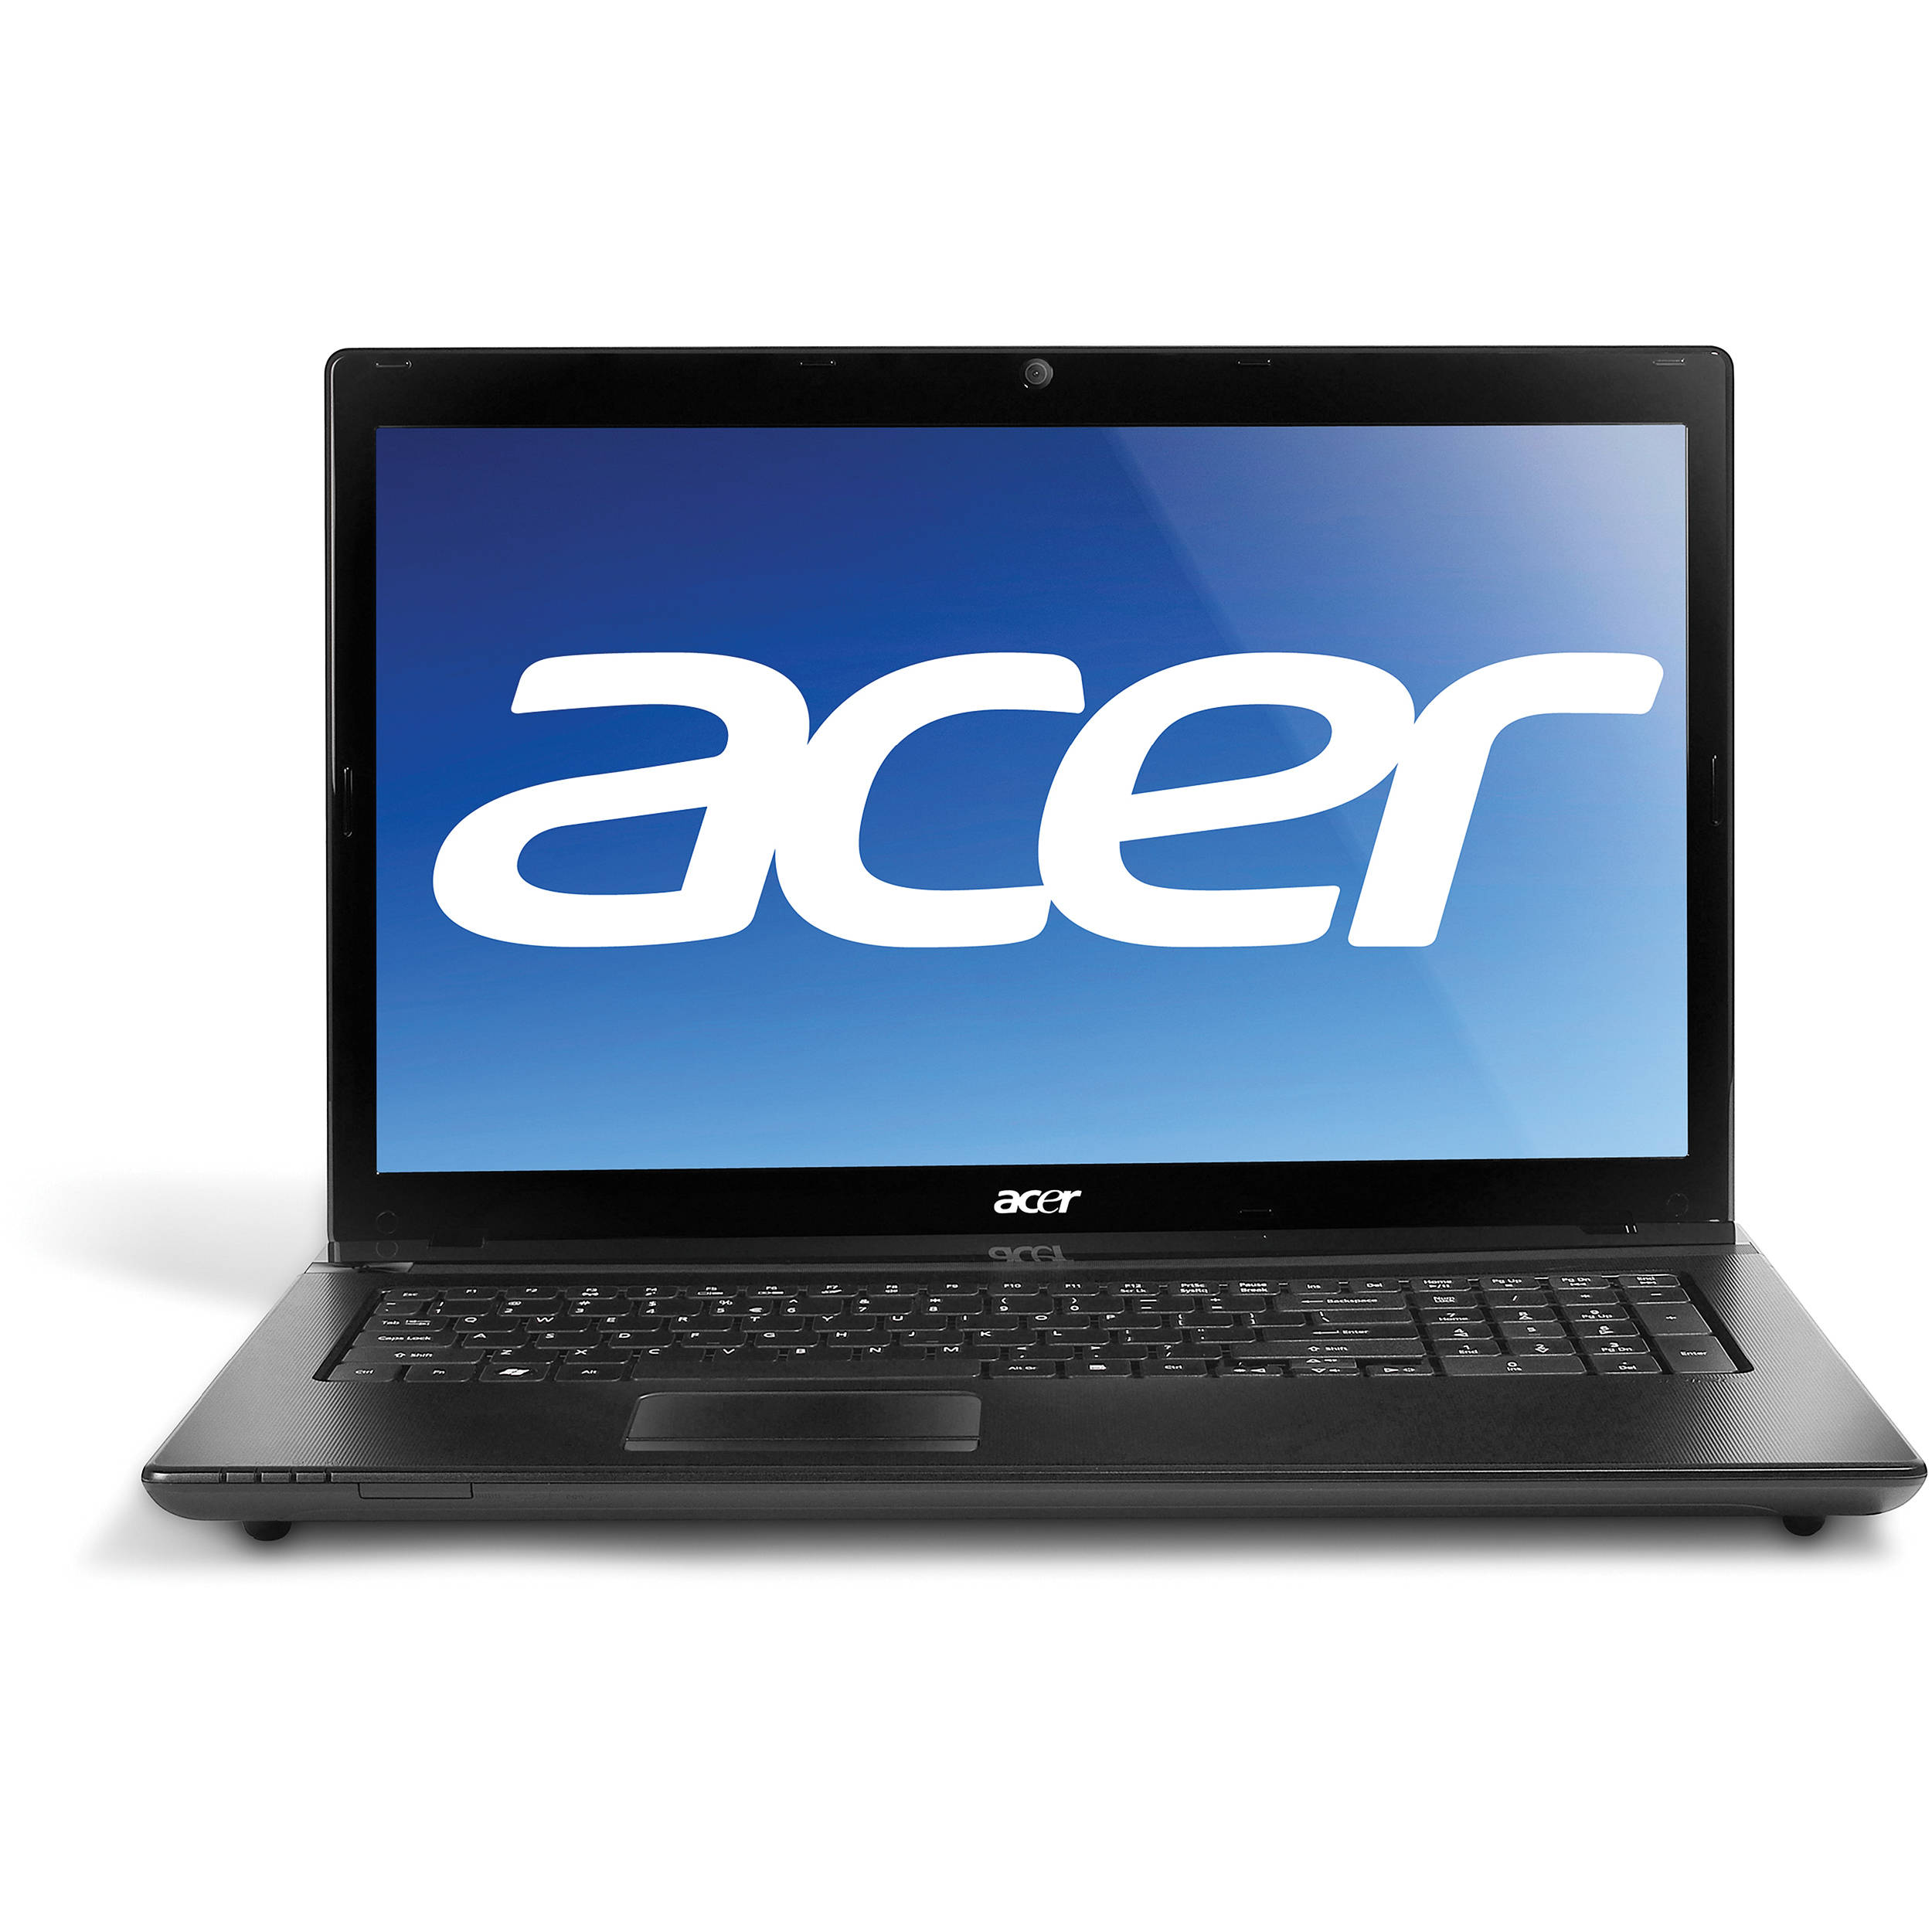 Acer Aspire 7750 Intel Turbo Boost Drivers Windows